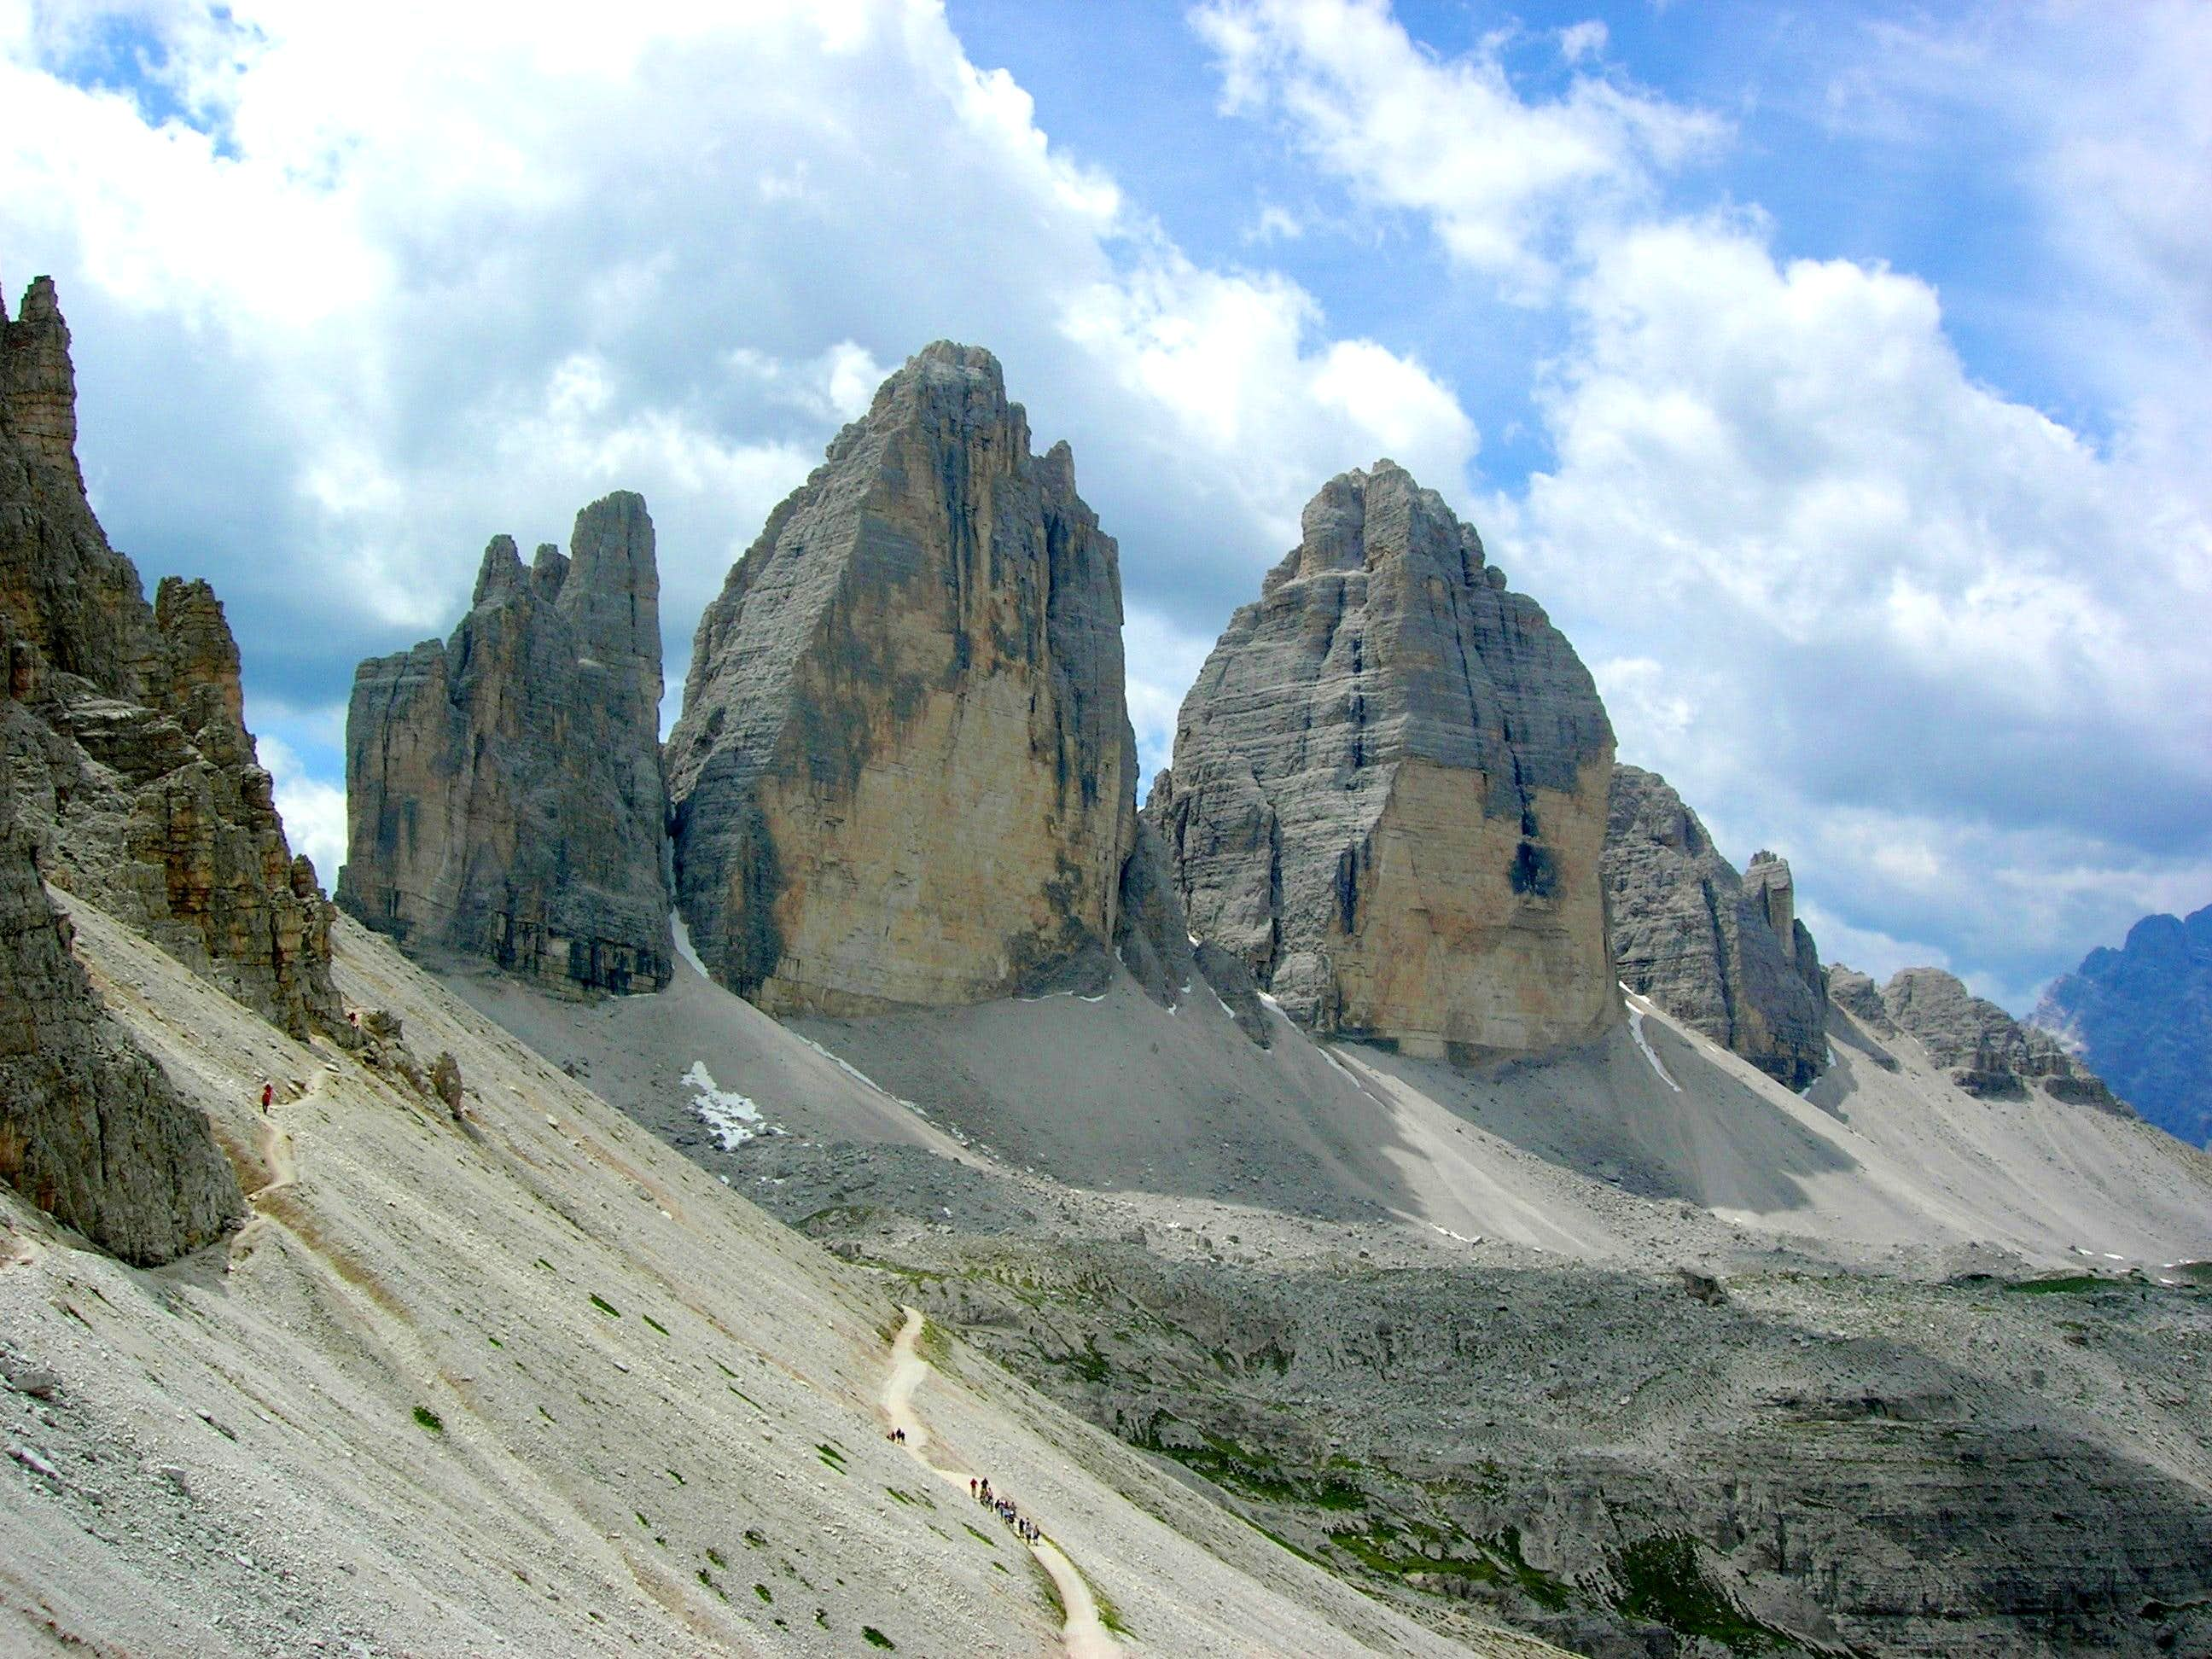 My trip to the Dolomites